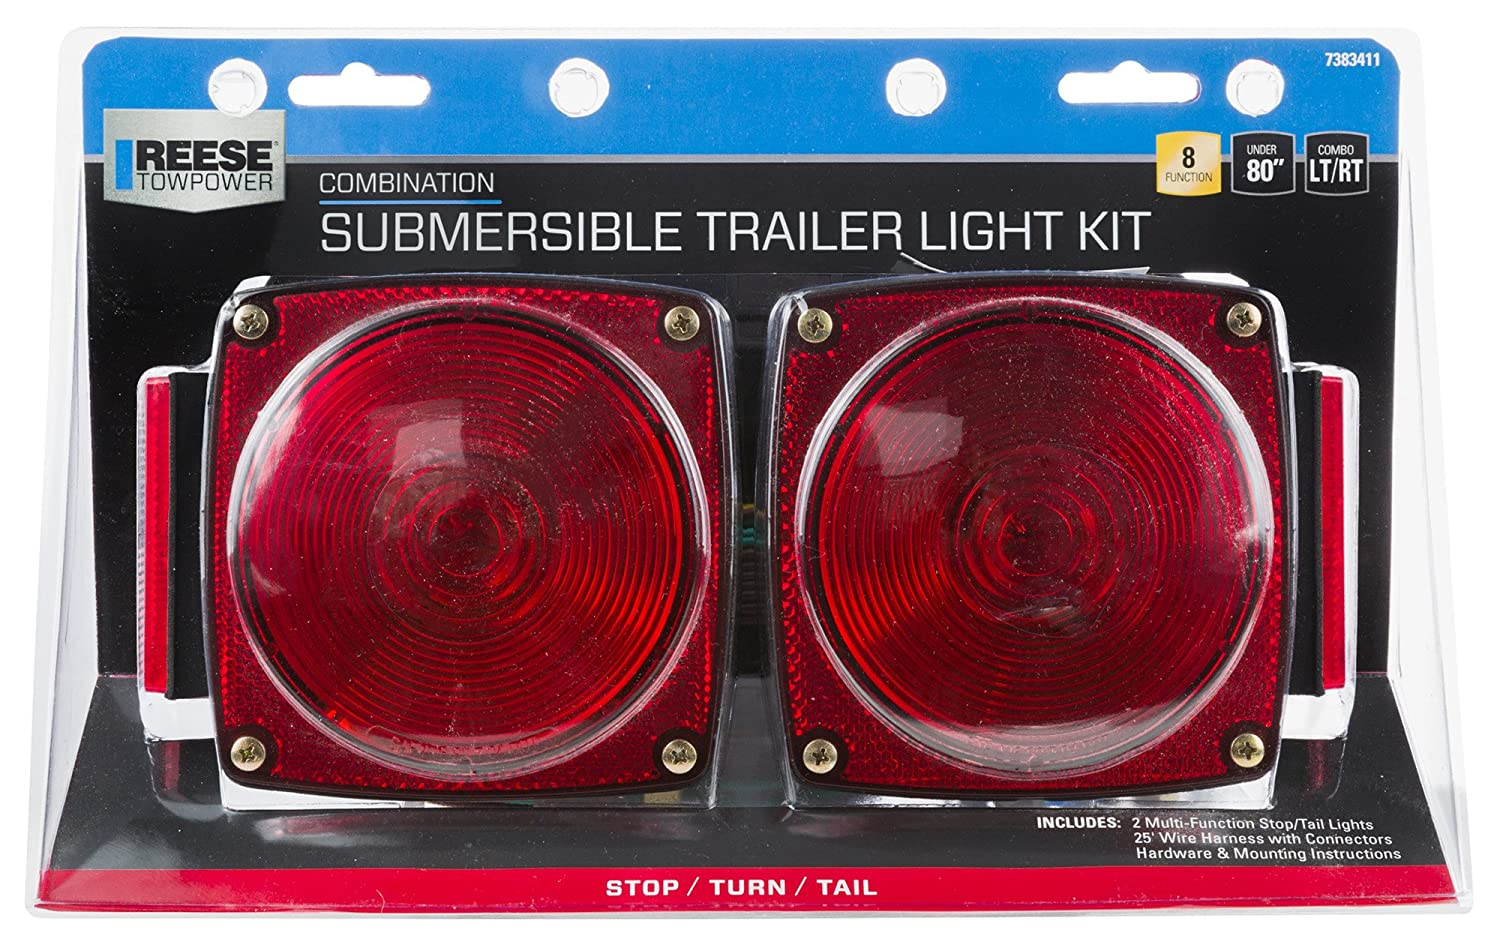 Reese Towpower 7383411 Submersible Trailer Light Kit Led Together With Wiring Under 80 Automotive